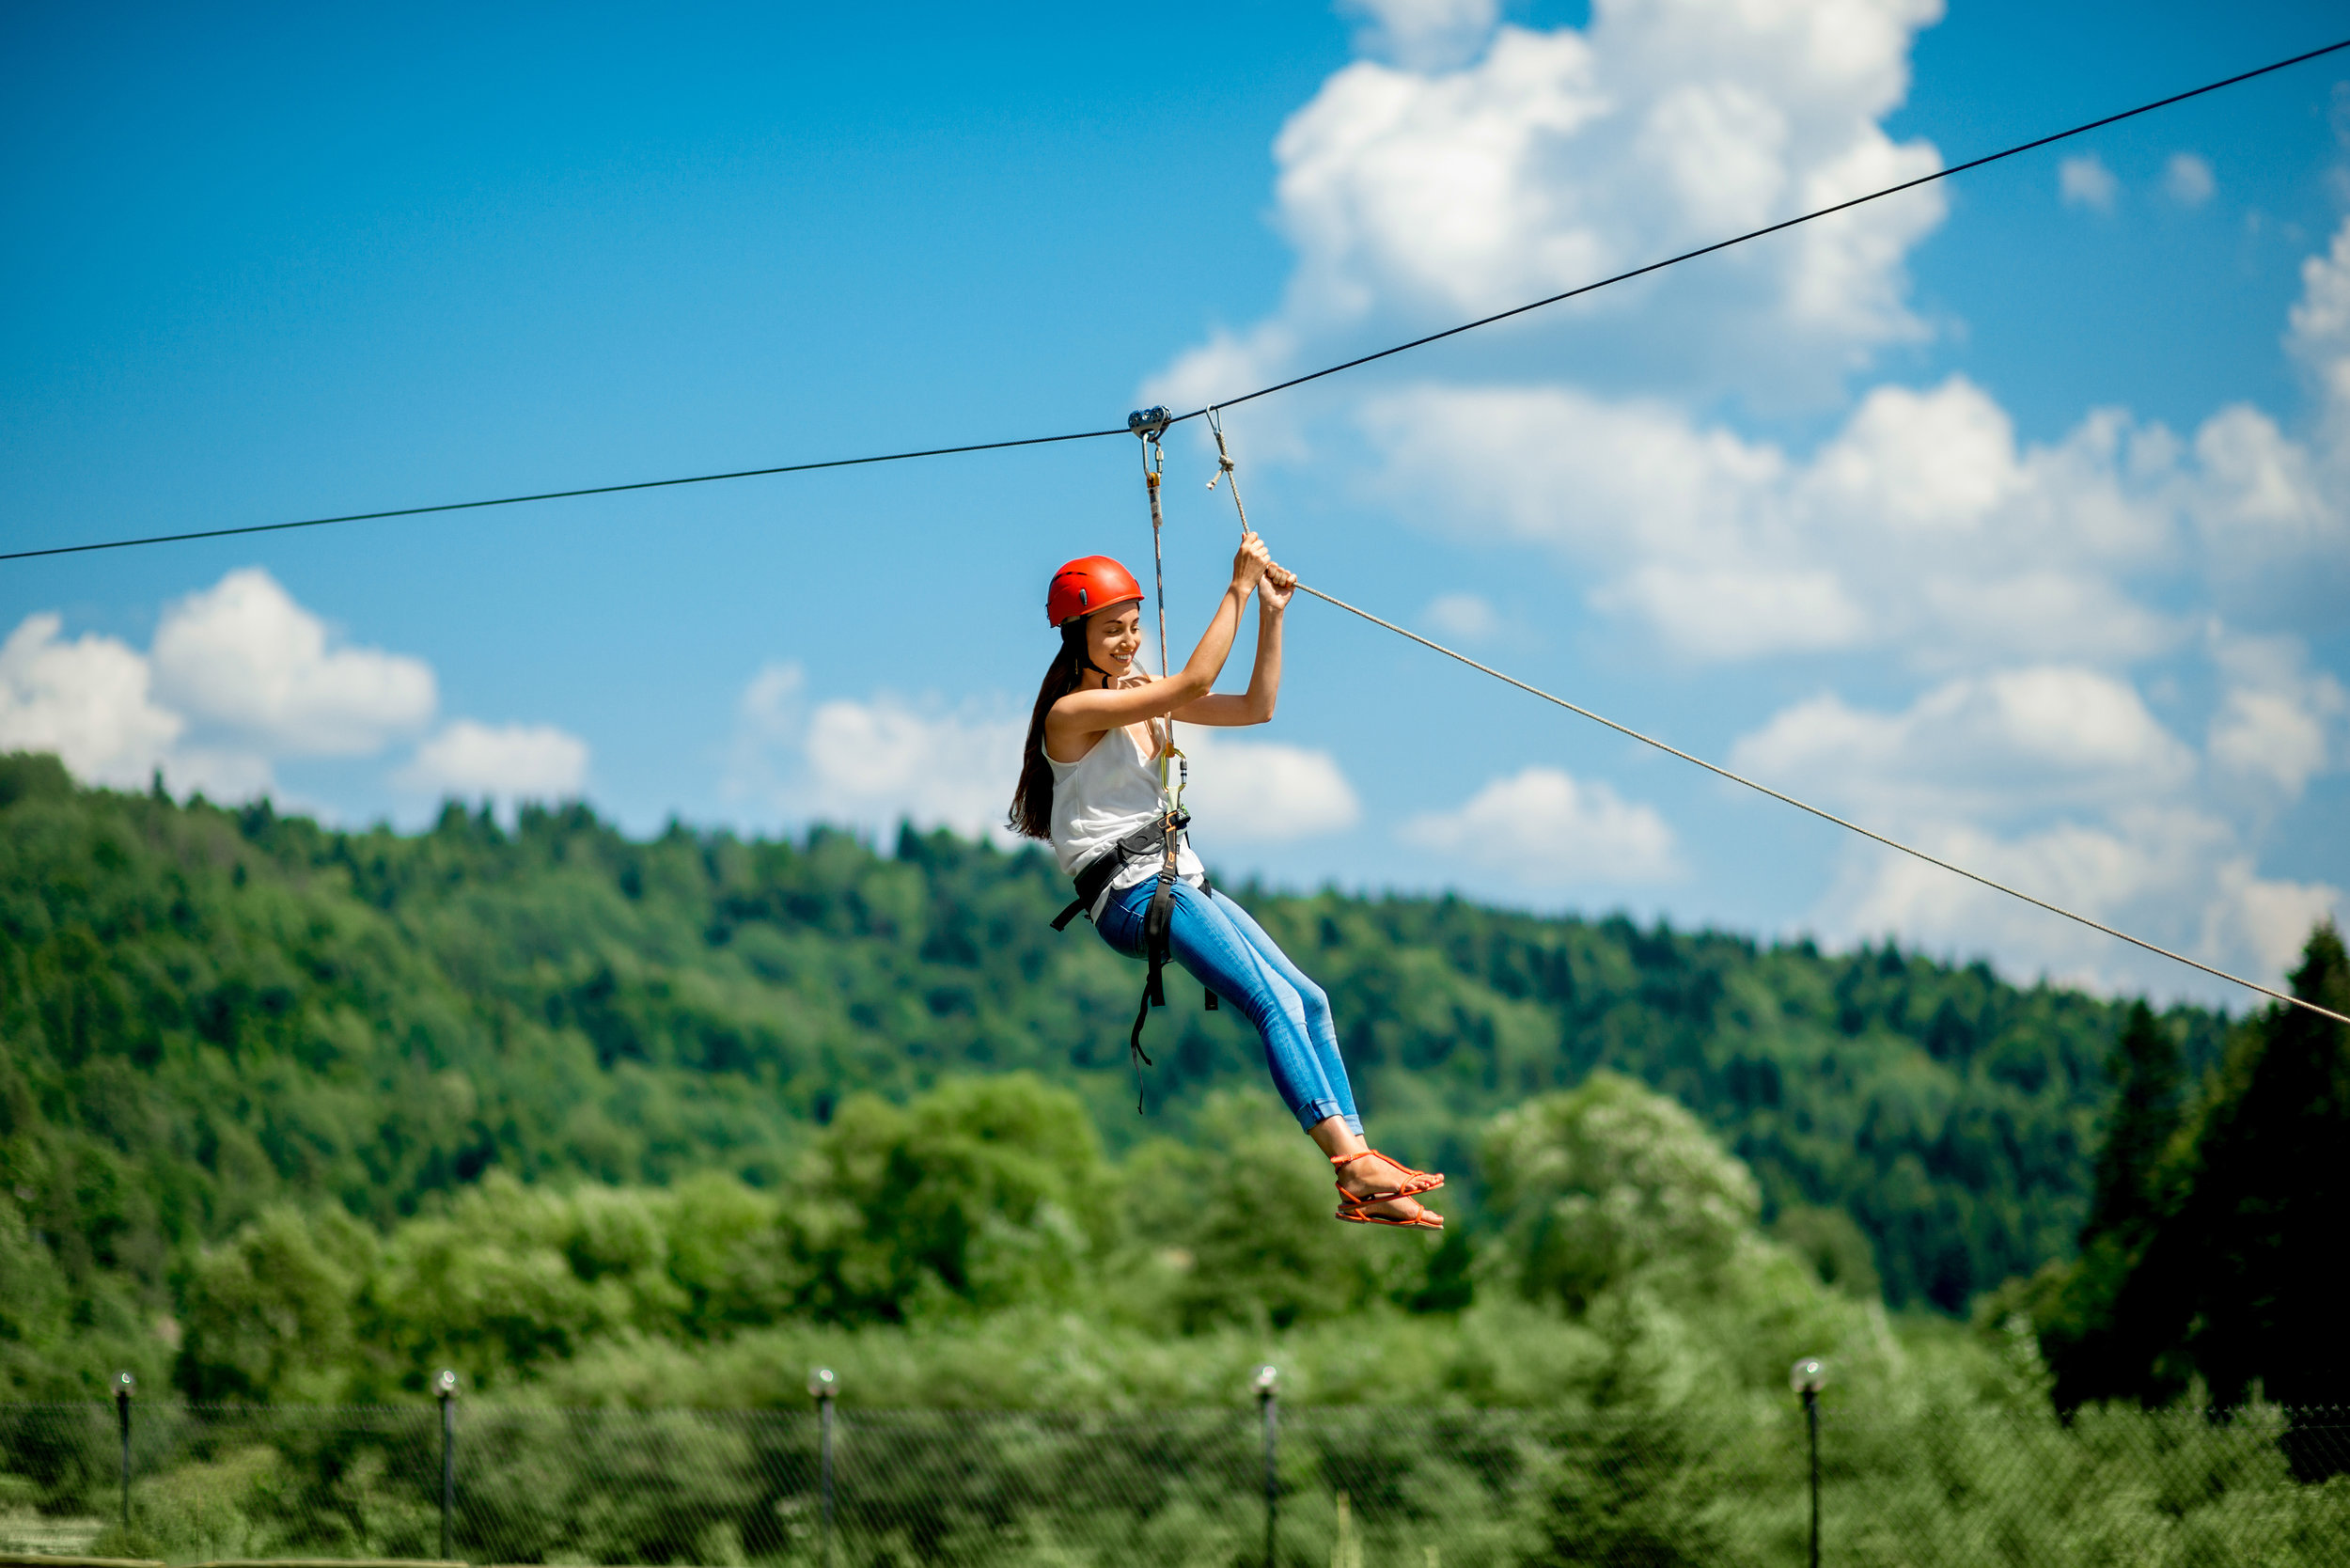 Canva - Riding on a Zip Line.jpg